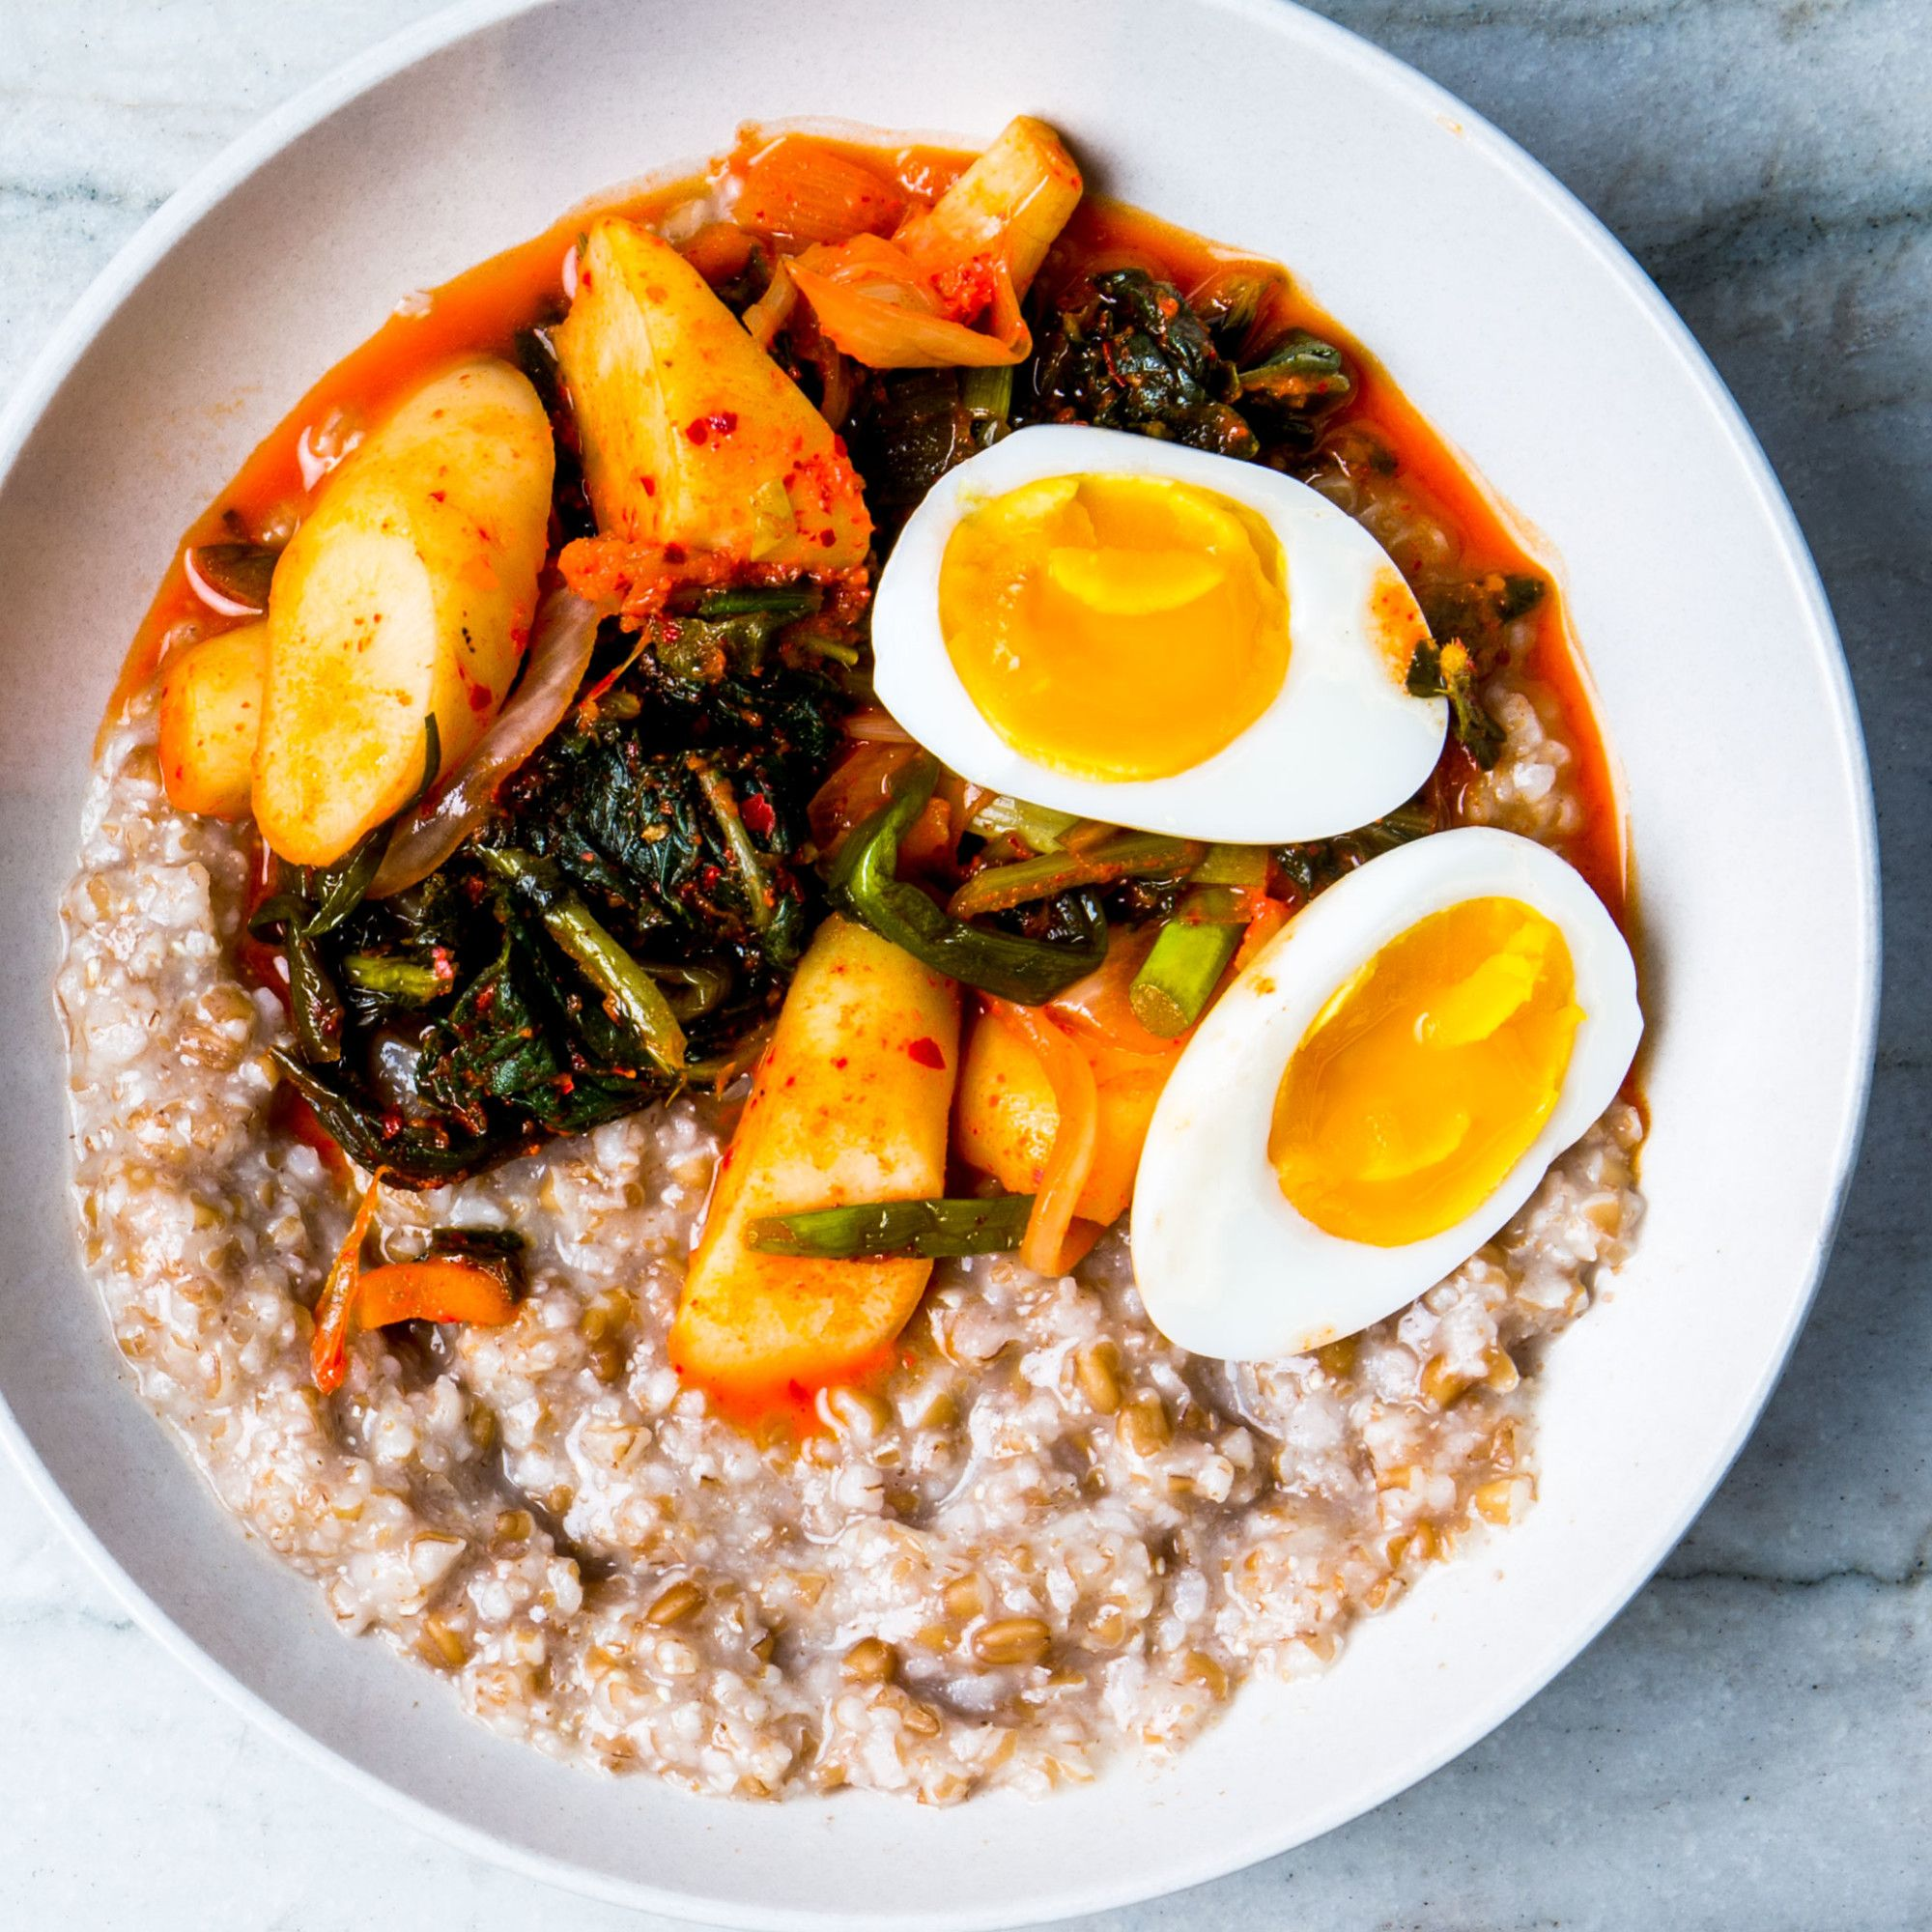 Kimchi gives this porridge recipe a spicy twist, while the 6-minute egg keeps it hearty and perfect for breakfast.